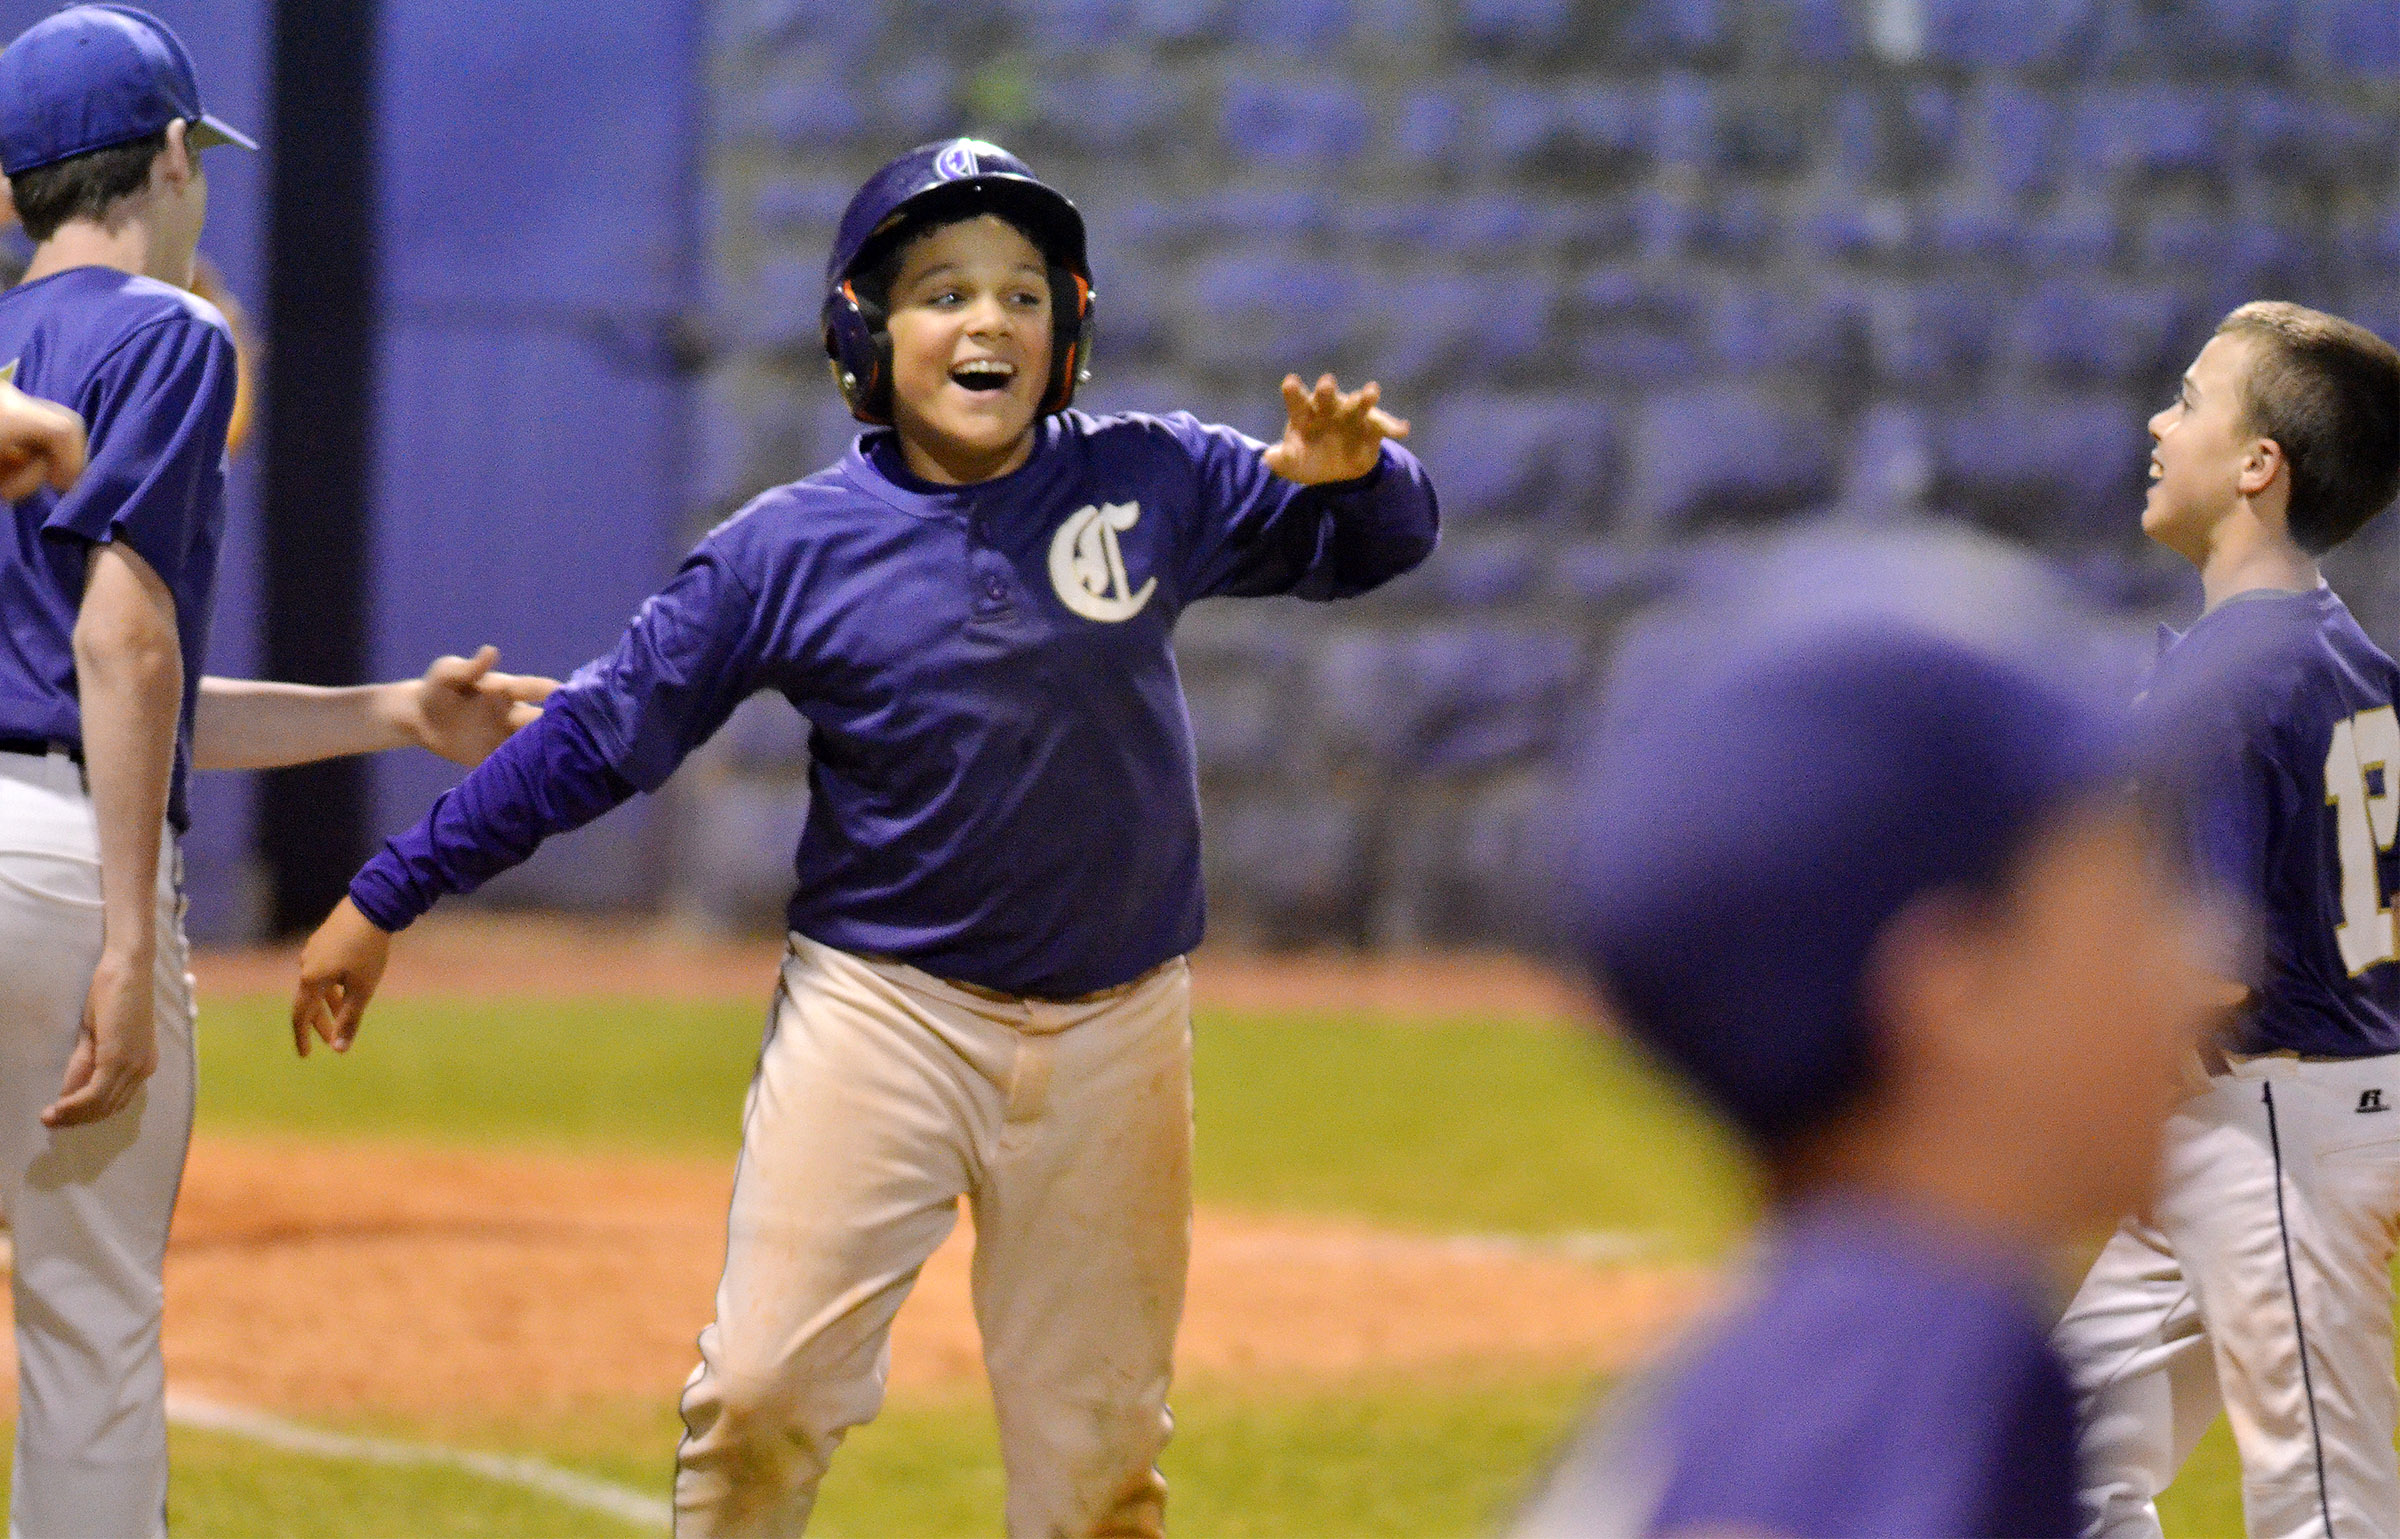 CMS sixth-grader Kaydon Taylor celebrates as his team wins.